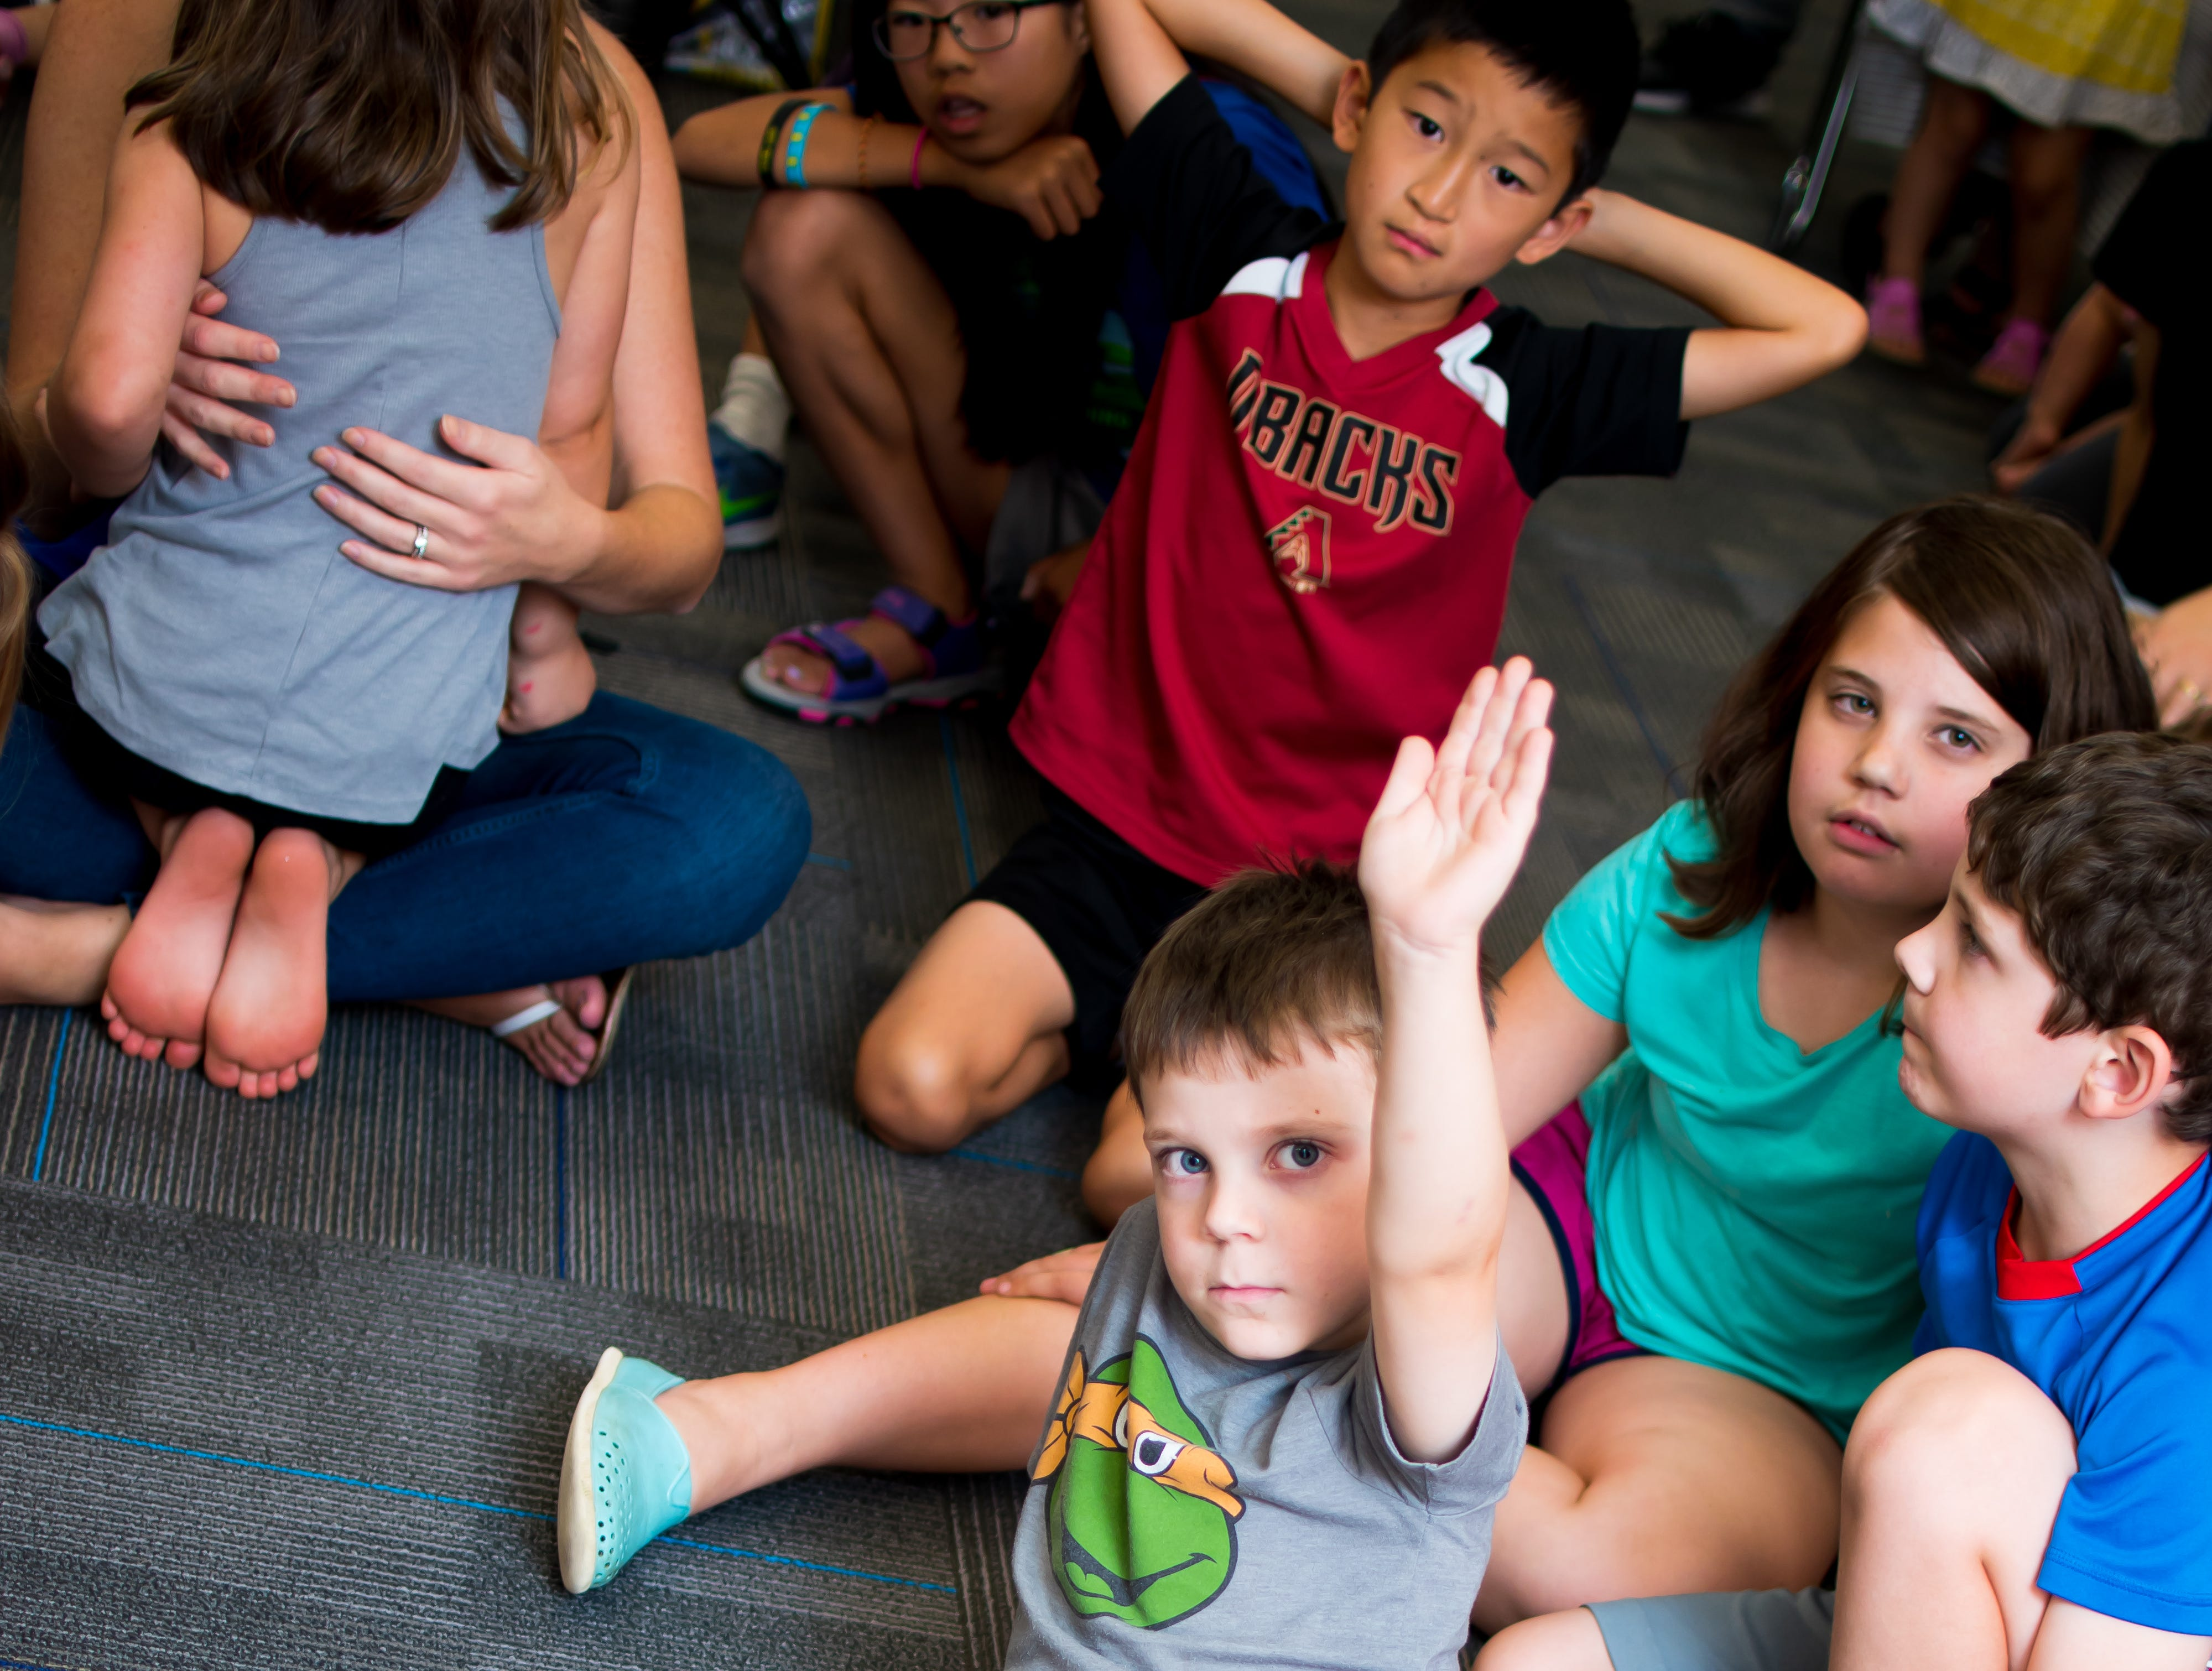 Colin Jensen, 5, of Clive raises his hand to ask a question on Thursday, September 20, 2018 at the Clive Public Library's Zoo Show and Tell in Clive.